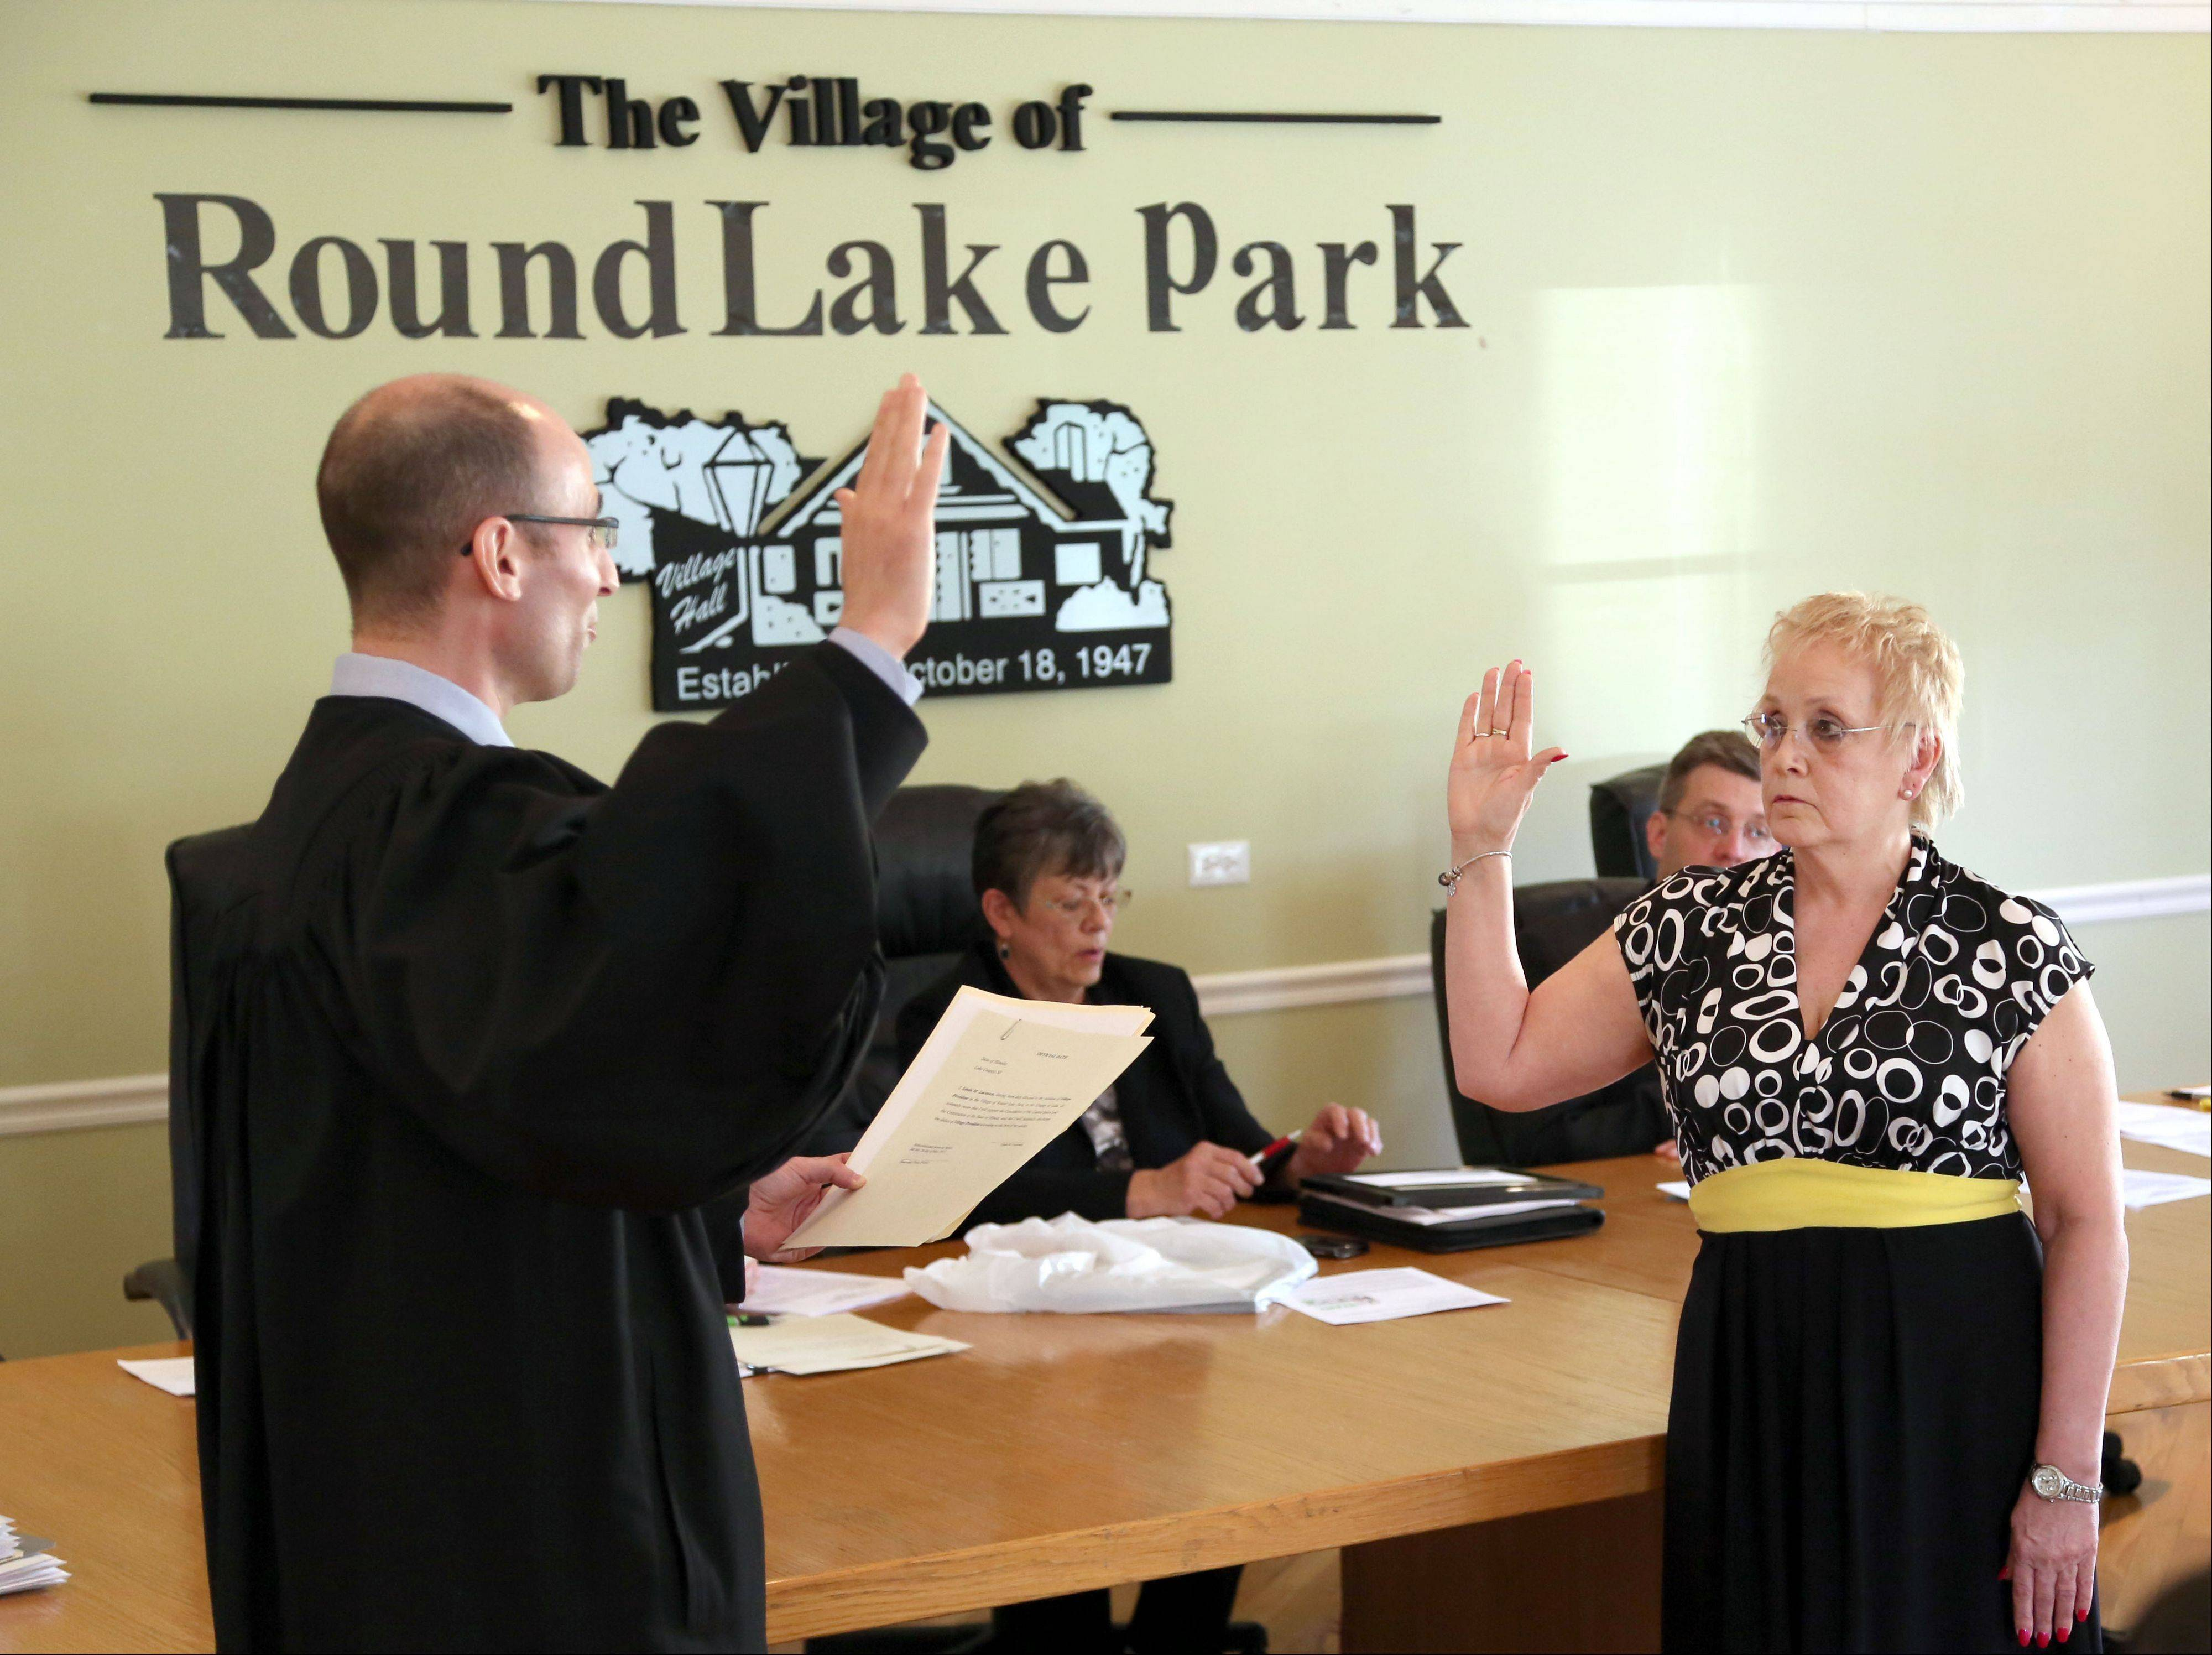 Linda Lucassen, right, is sworn in as the new mayor of Round Lake Park by Lake County Circuit Court Judge Daniel B. Shanes during their village board meeting Tuesday night.